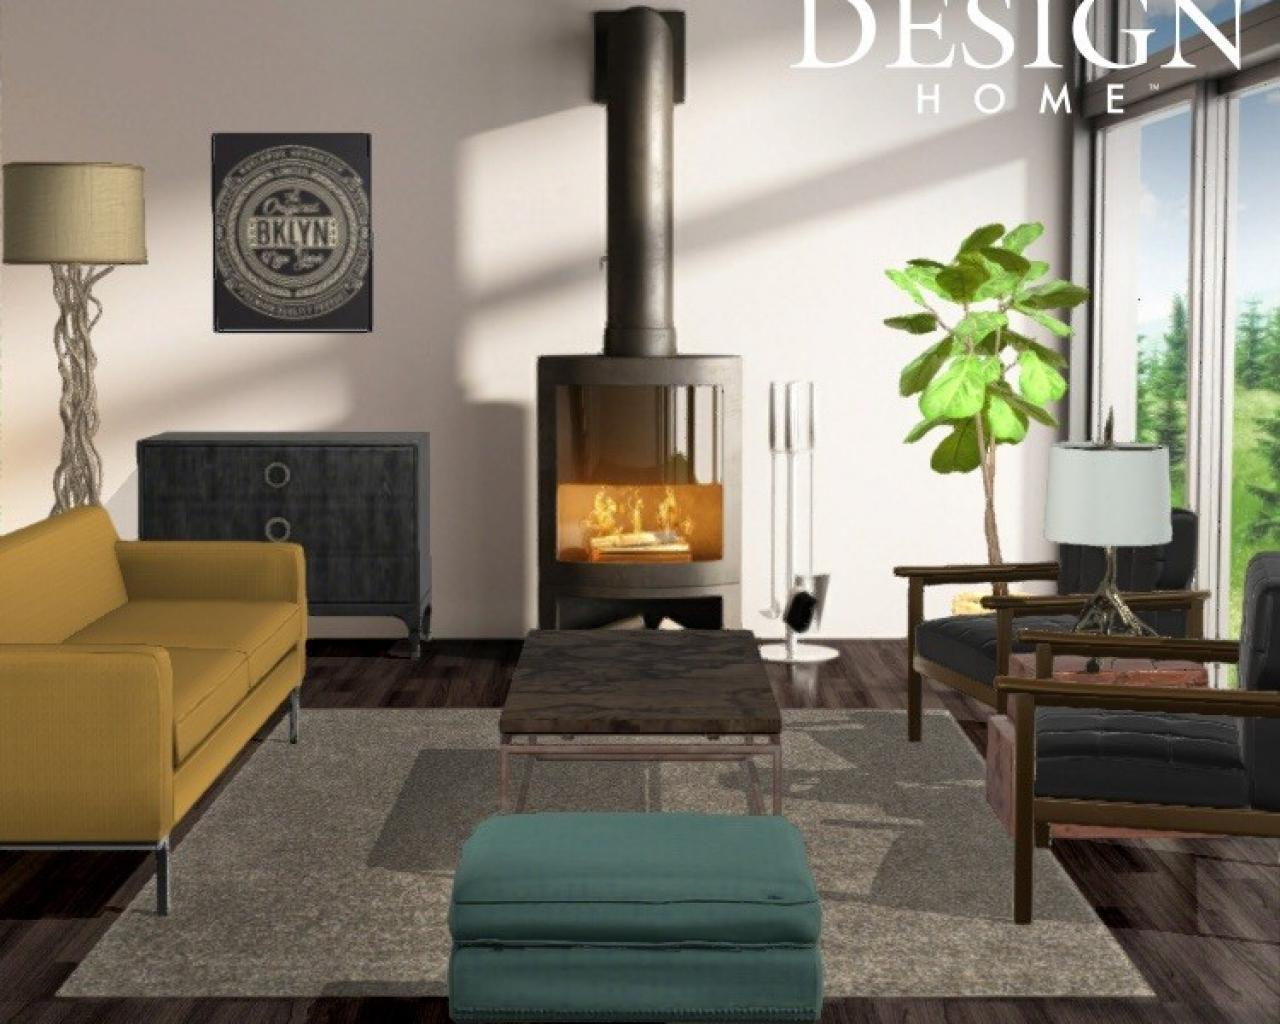 Keriu0027s Design: Cozy, Modern Living Room